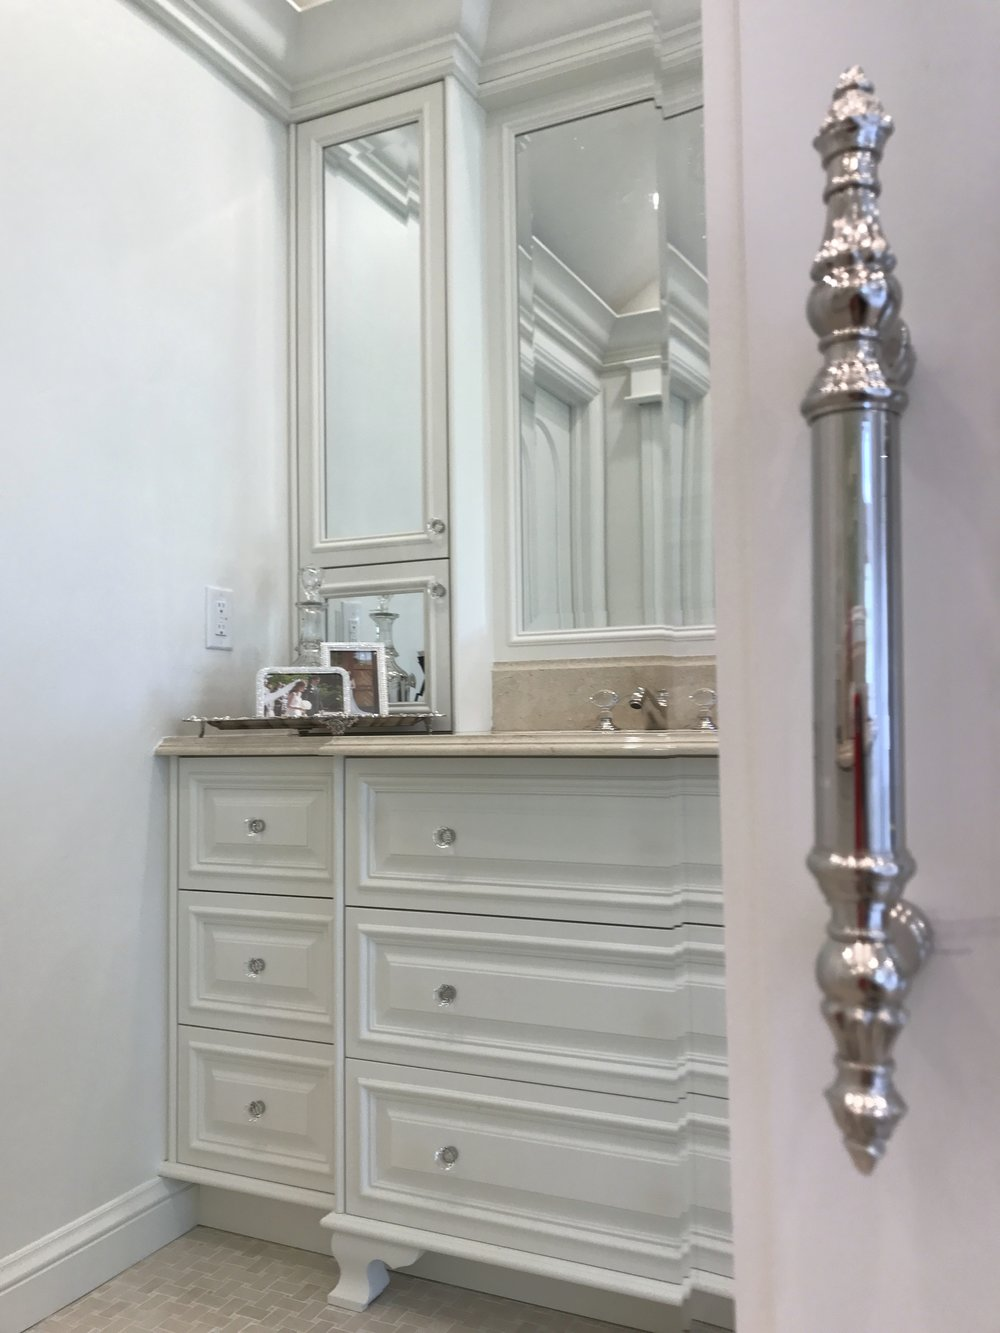 Mirrored sliding doors on the closet have detailed European pulls.  The hardware and crystal handled faucets and controls are the jewelry of the room.